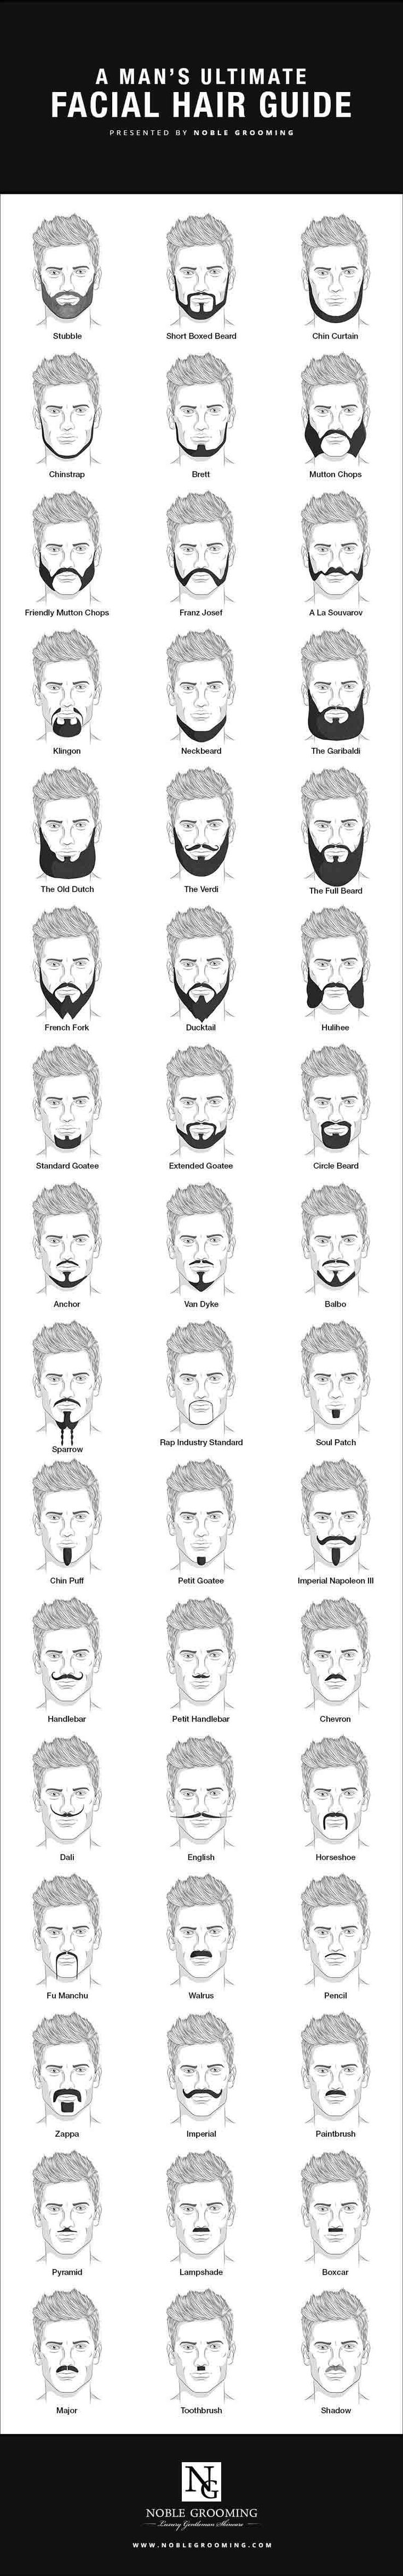 This Guide Tells You Everything You Ever Wanted To Know About Facial Hair